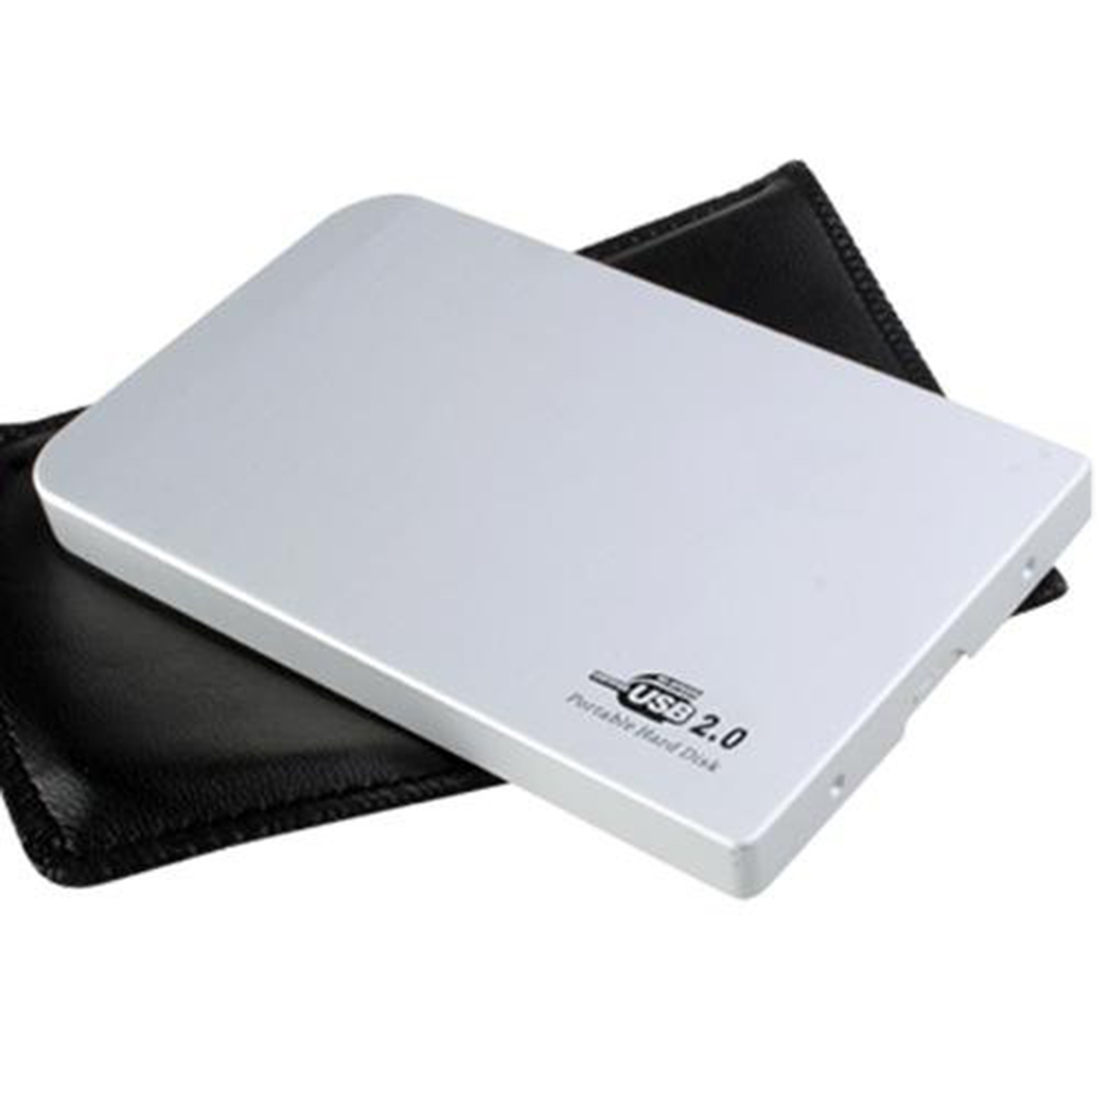 [The goods stop production and no stock]2.5 hard drive, Silver External Hard Drive Disk Enclosure 2.5 Inch Usb 2.0 I